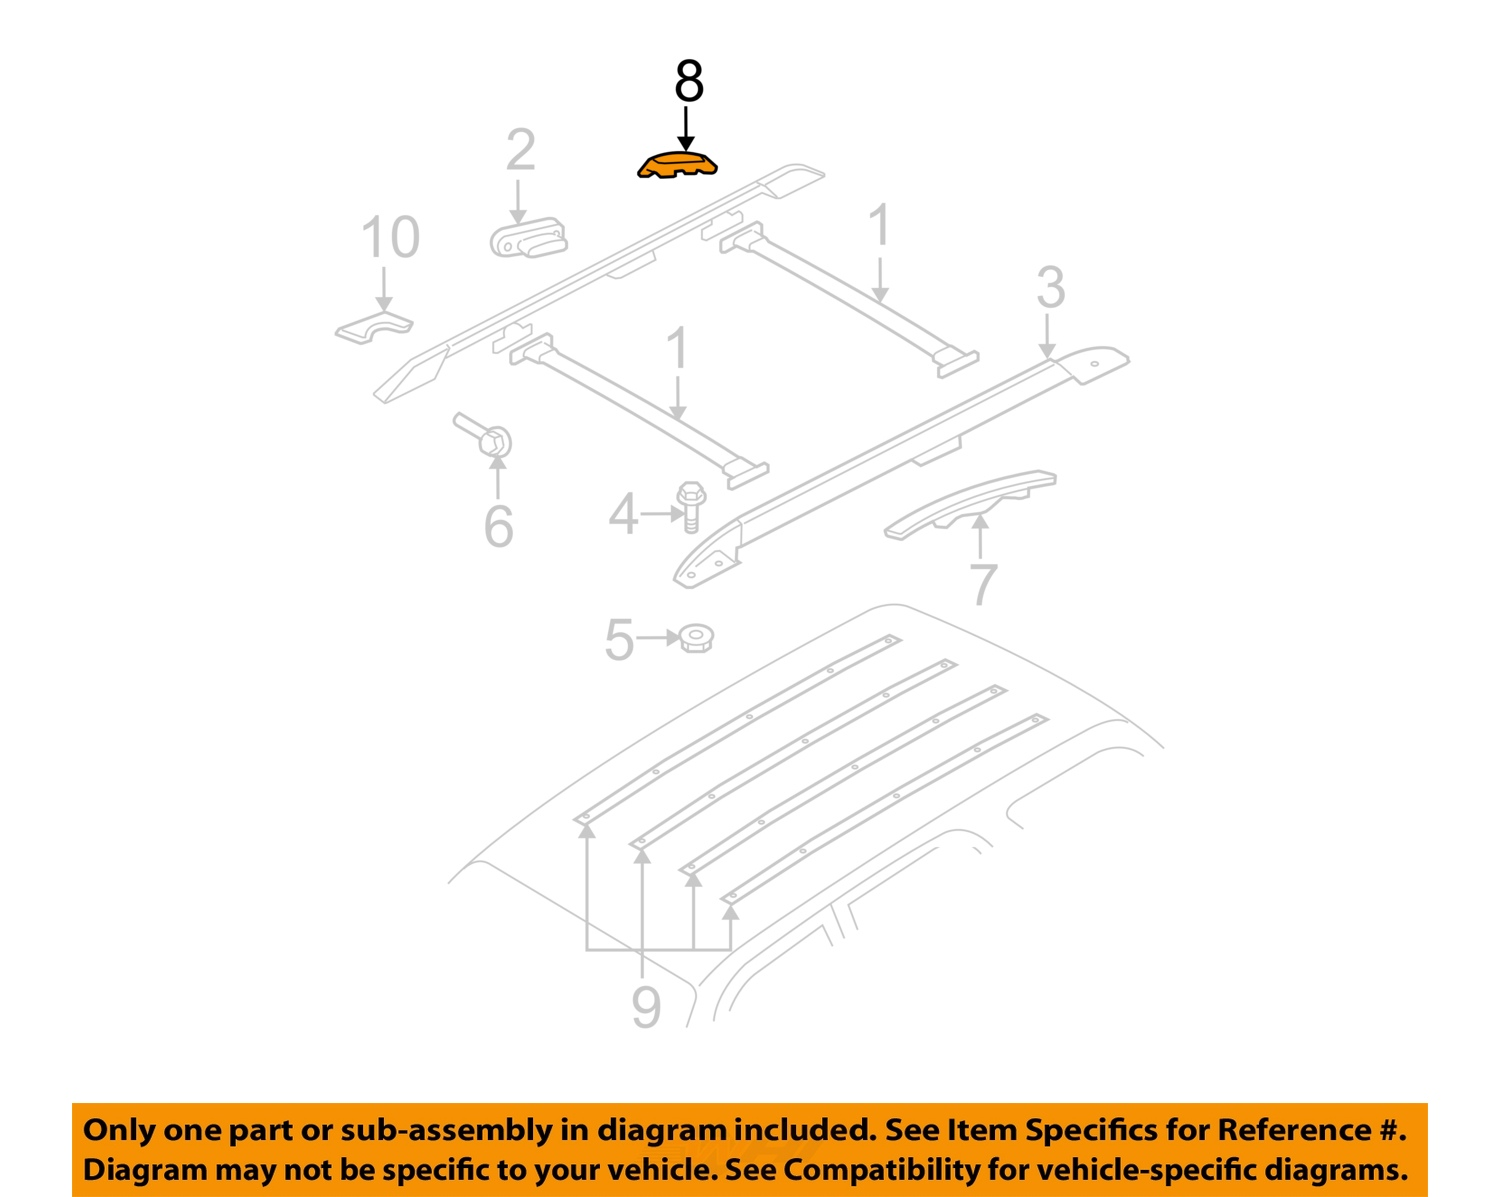 2004 Mercury Mountaineer Parts Diagram Roof Rack  Mercury